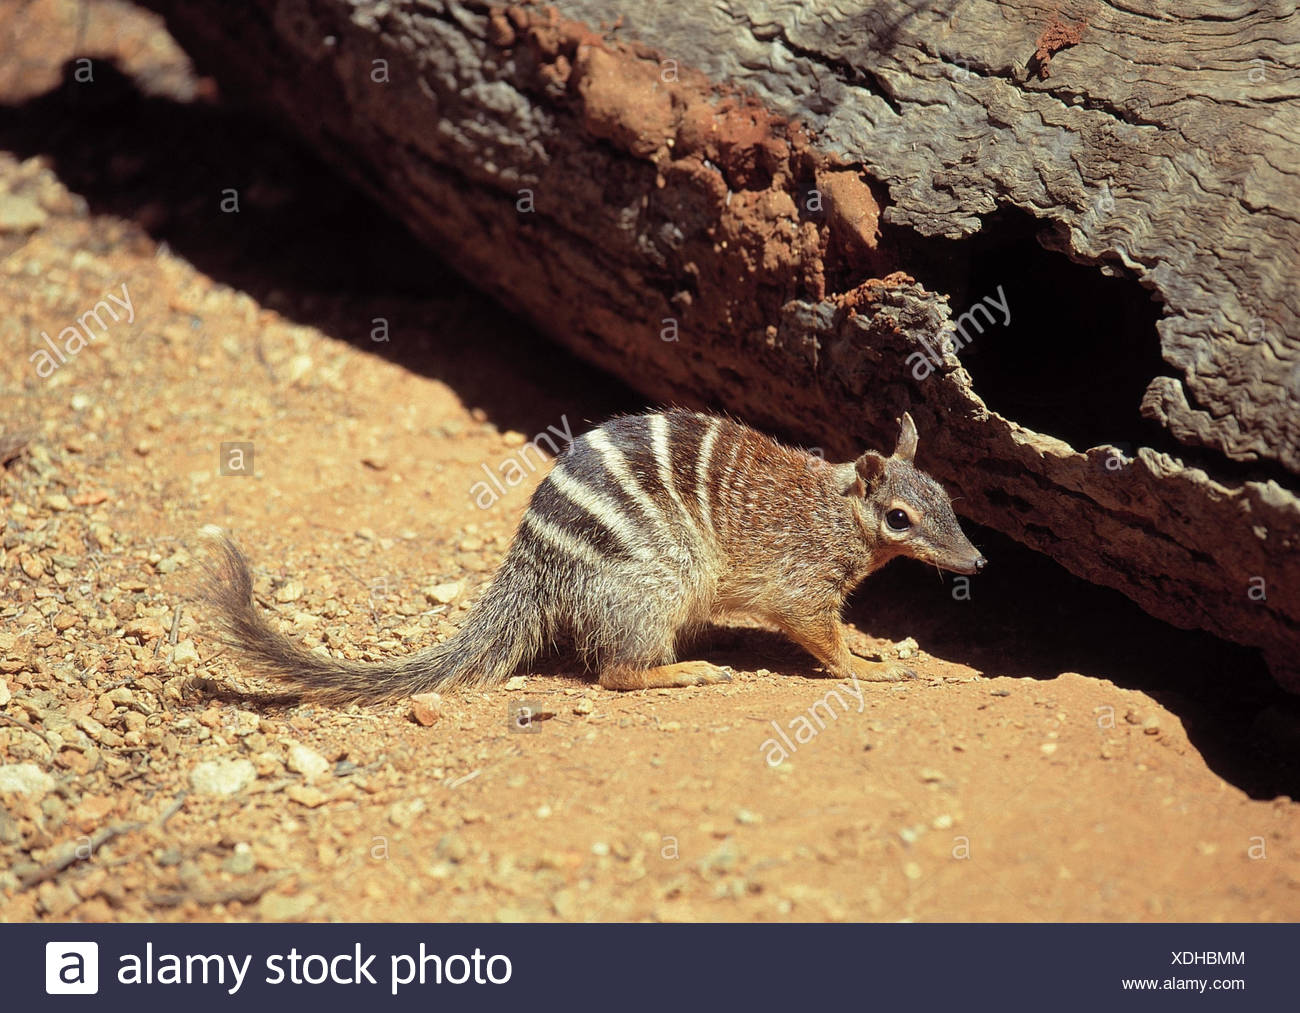 ... Ant Marsupial Numbat Myrmecobius Fasciatus Outside Mammal Mammals  Marsupials Sand Trunk Animal XDHBMM Numbathtml Numbat Animal Coloring Pages  Numbat